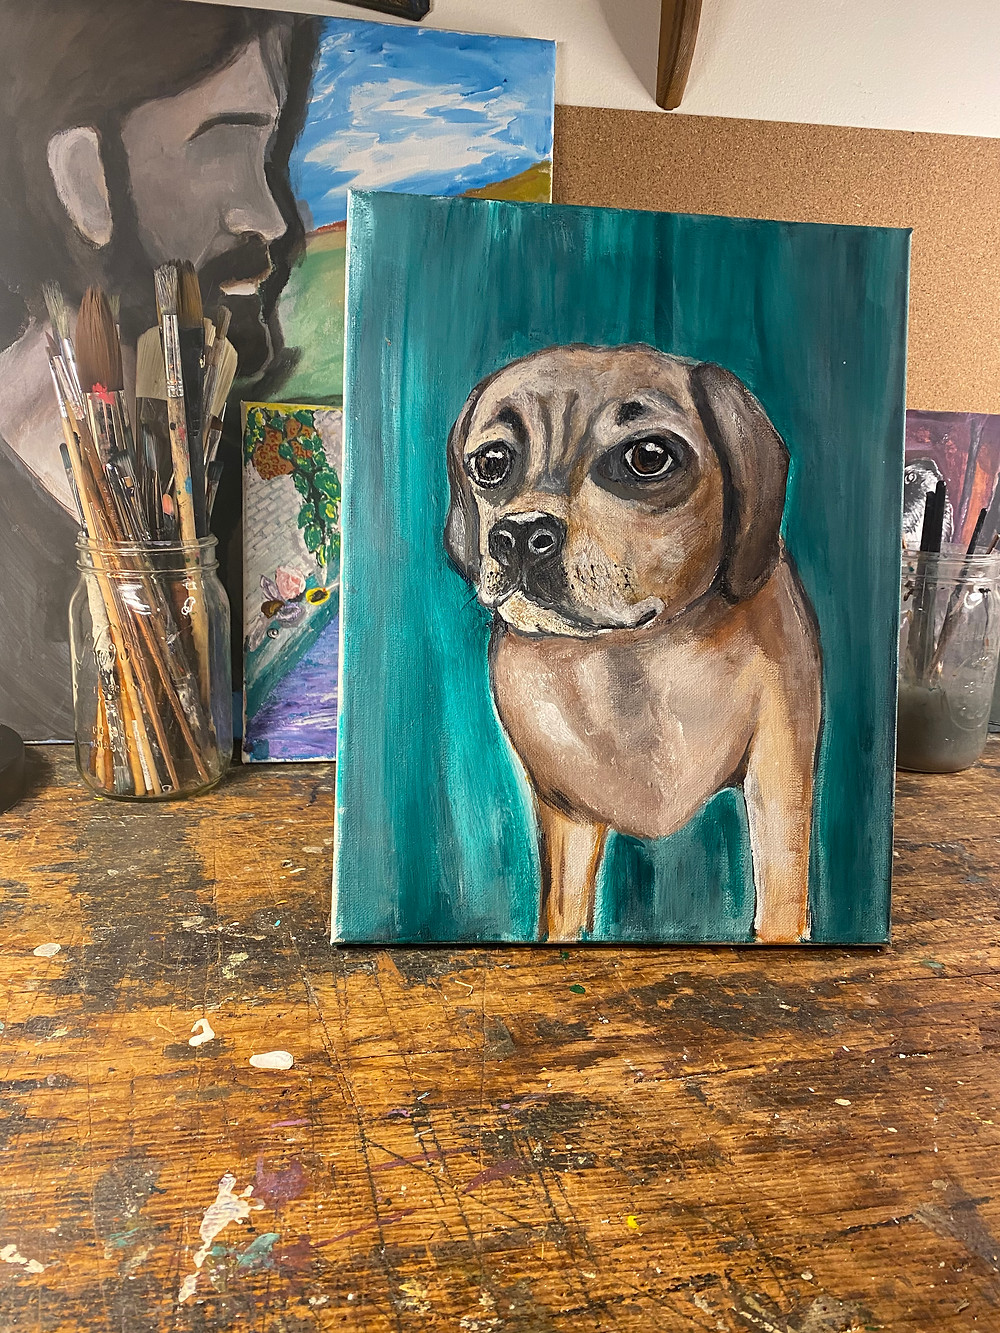 Commissioned Painting of puggle in art studio